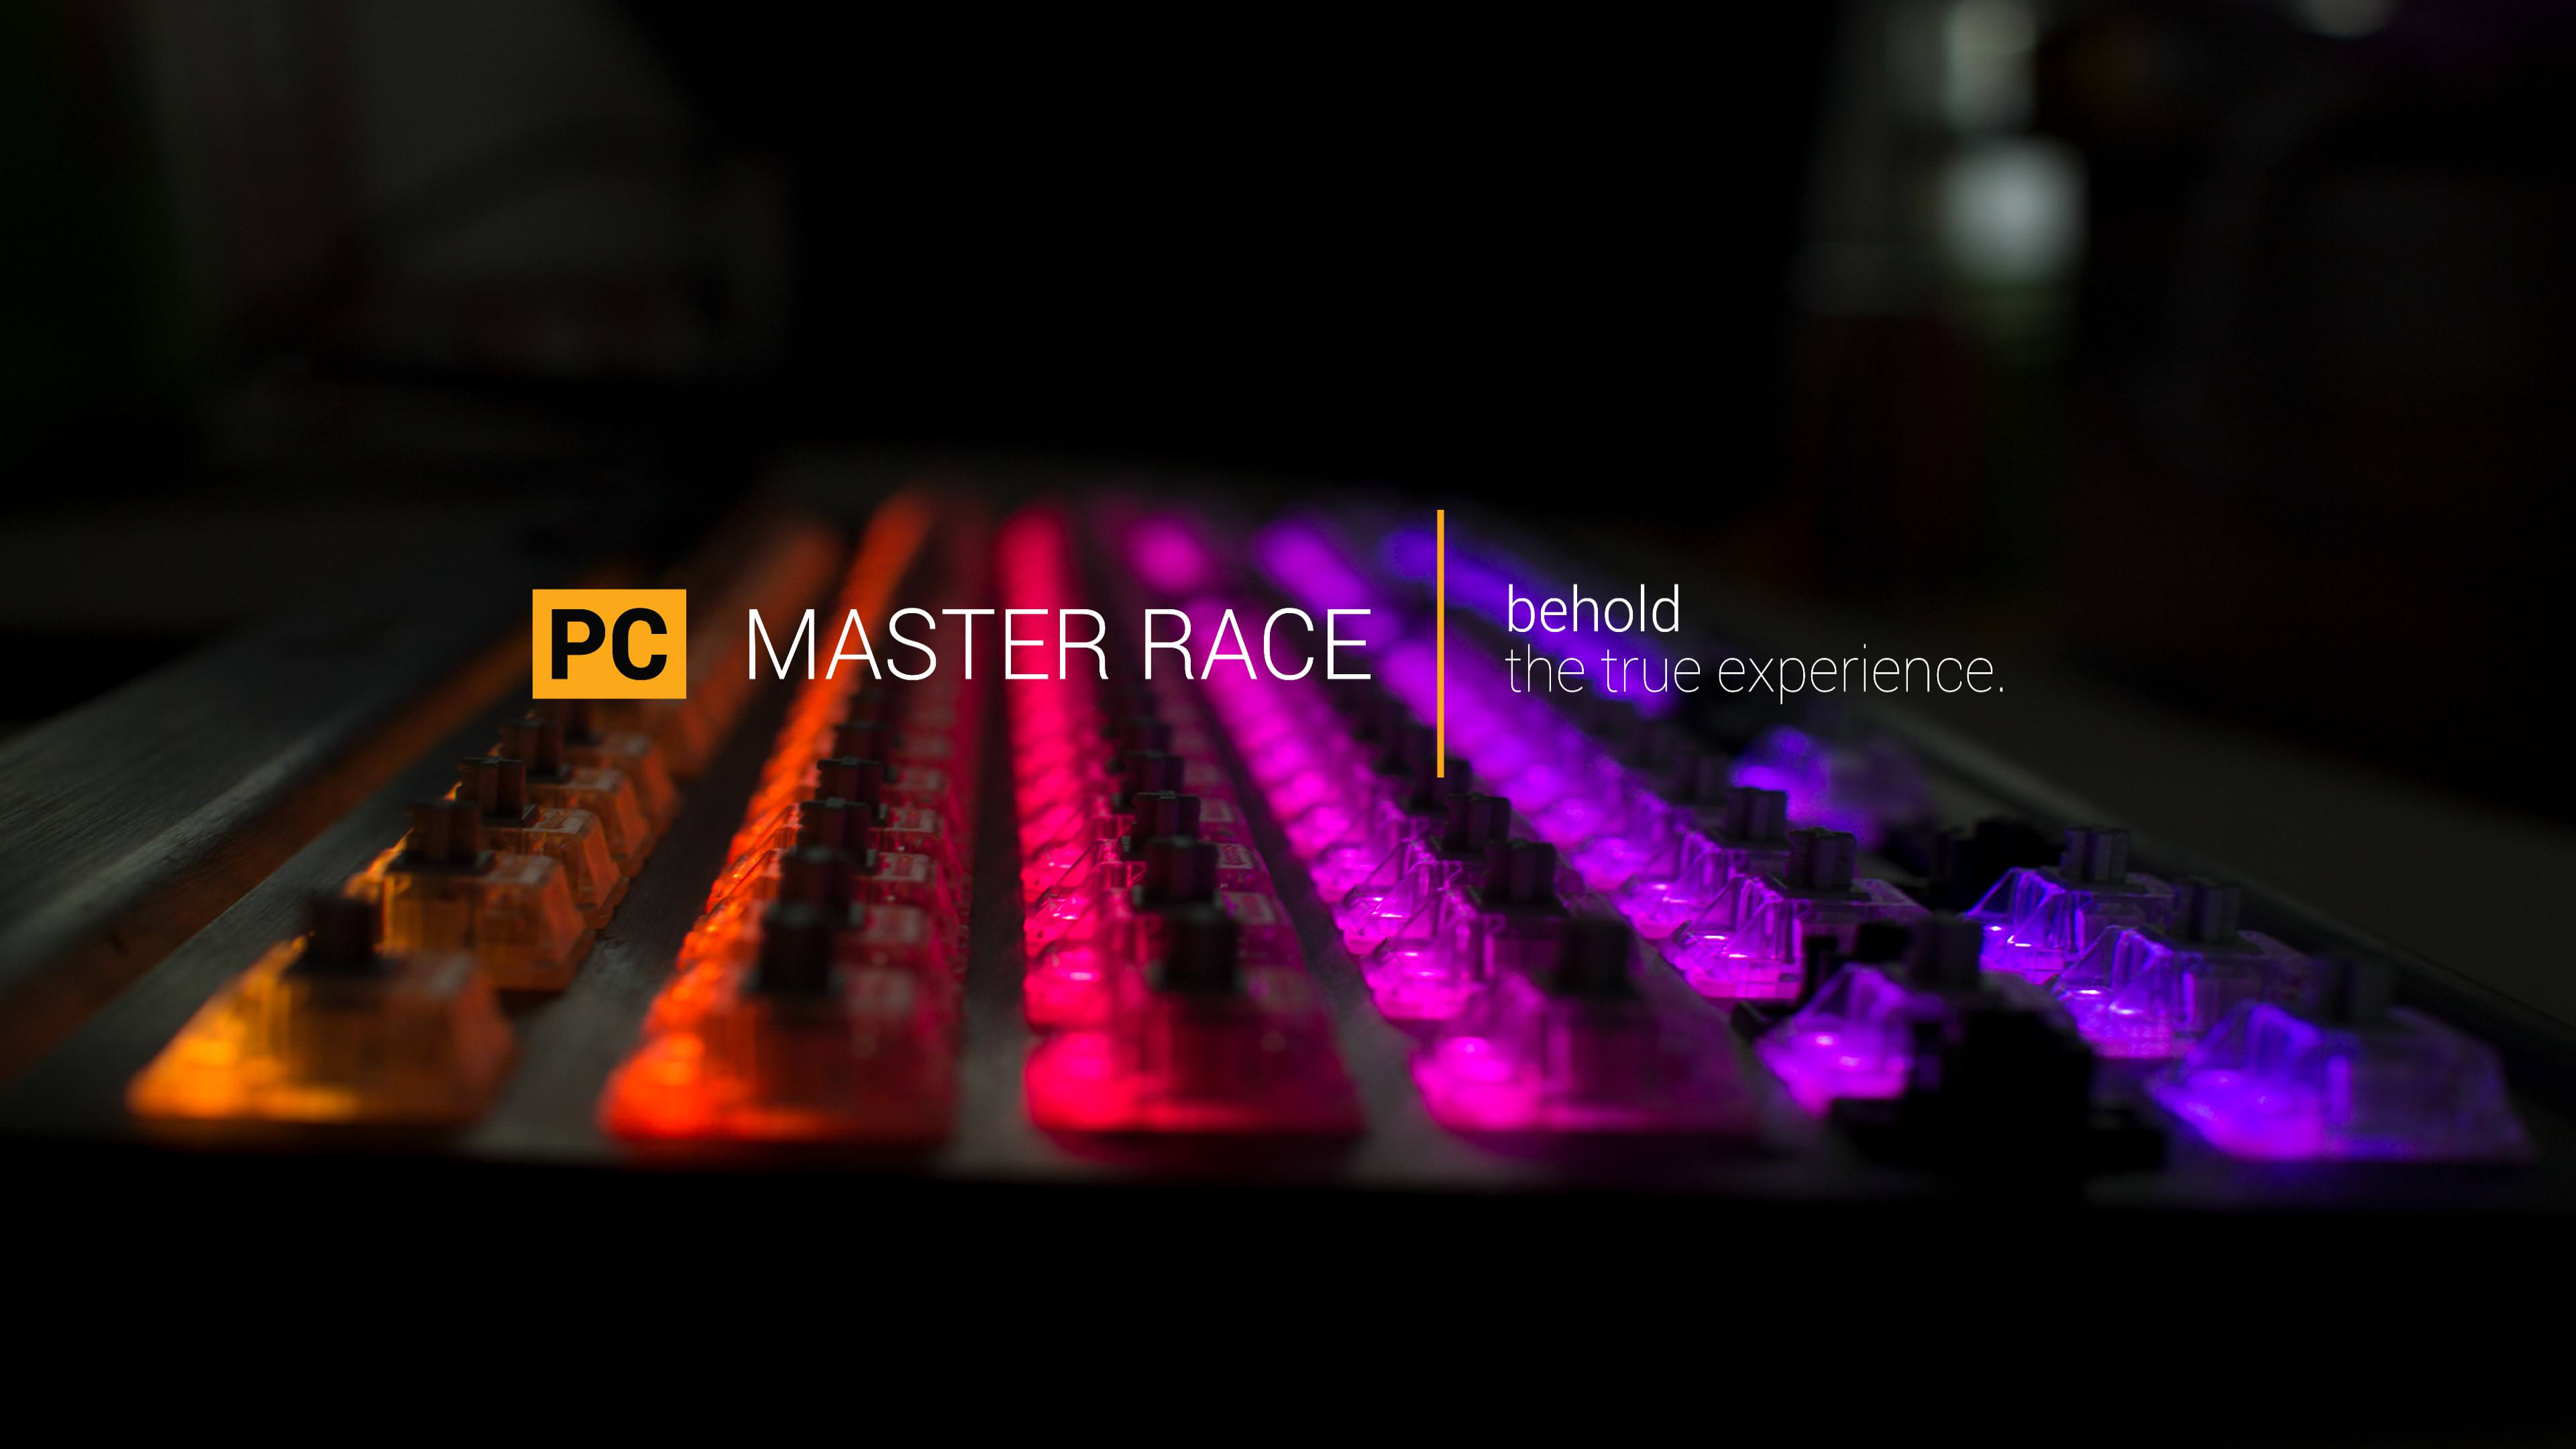 Glorious Pc Master Race Wallpaper Posted By Samantha Cunningham